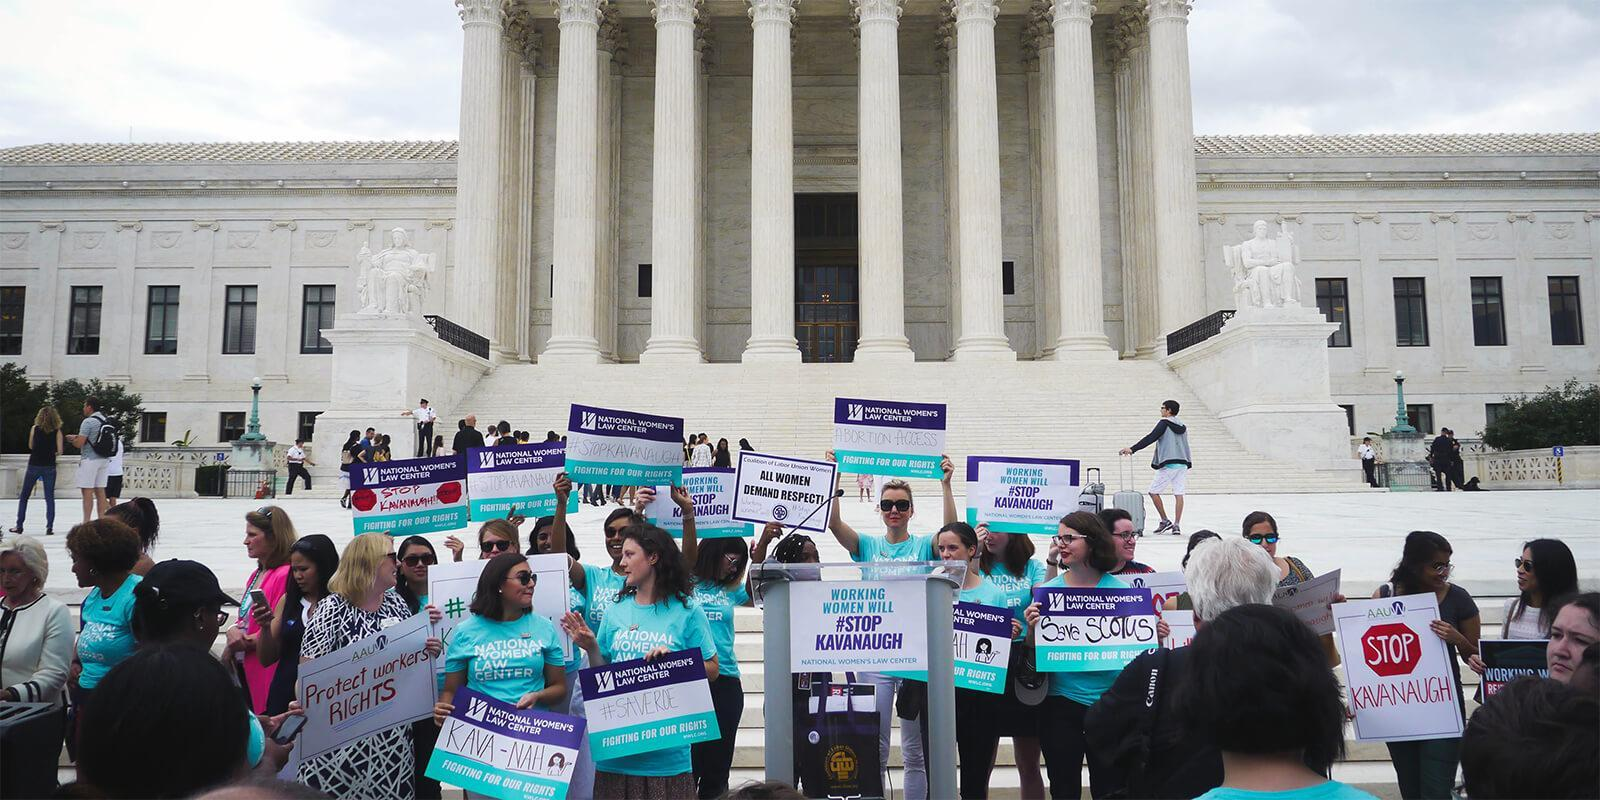 Rally on the steps of the supreme court